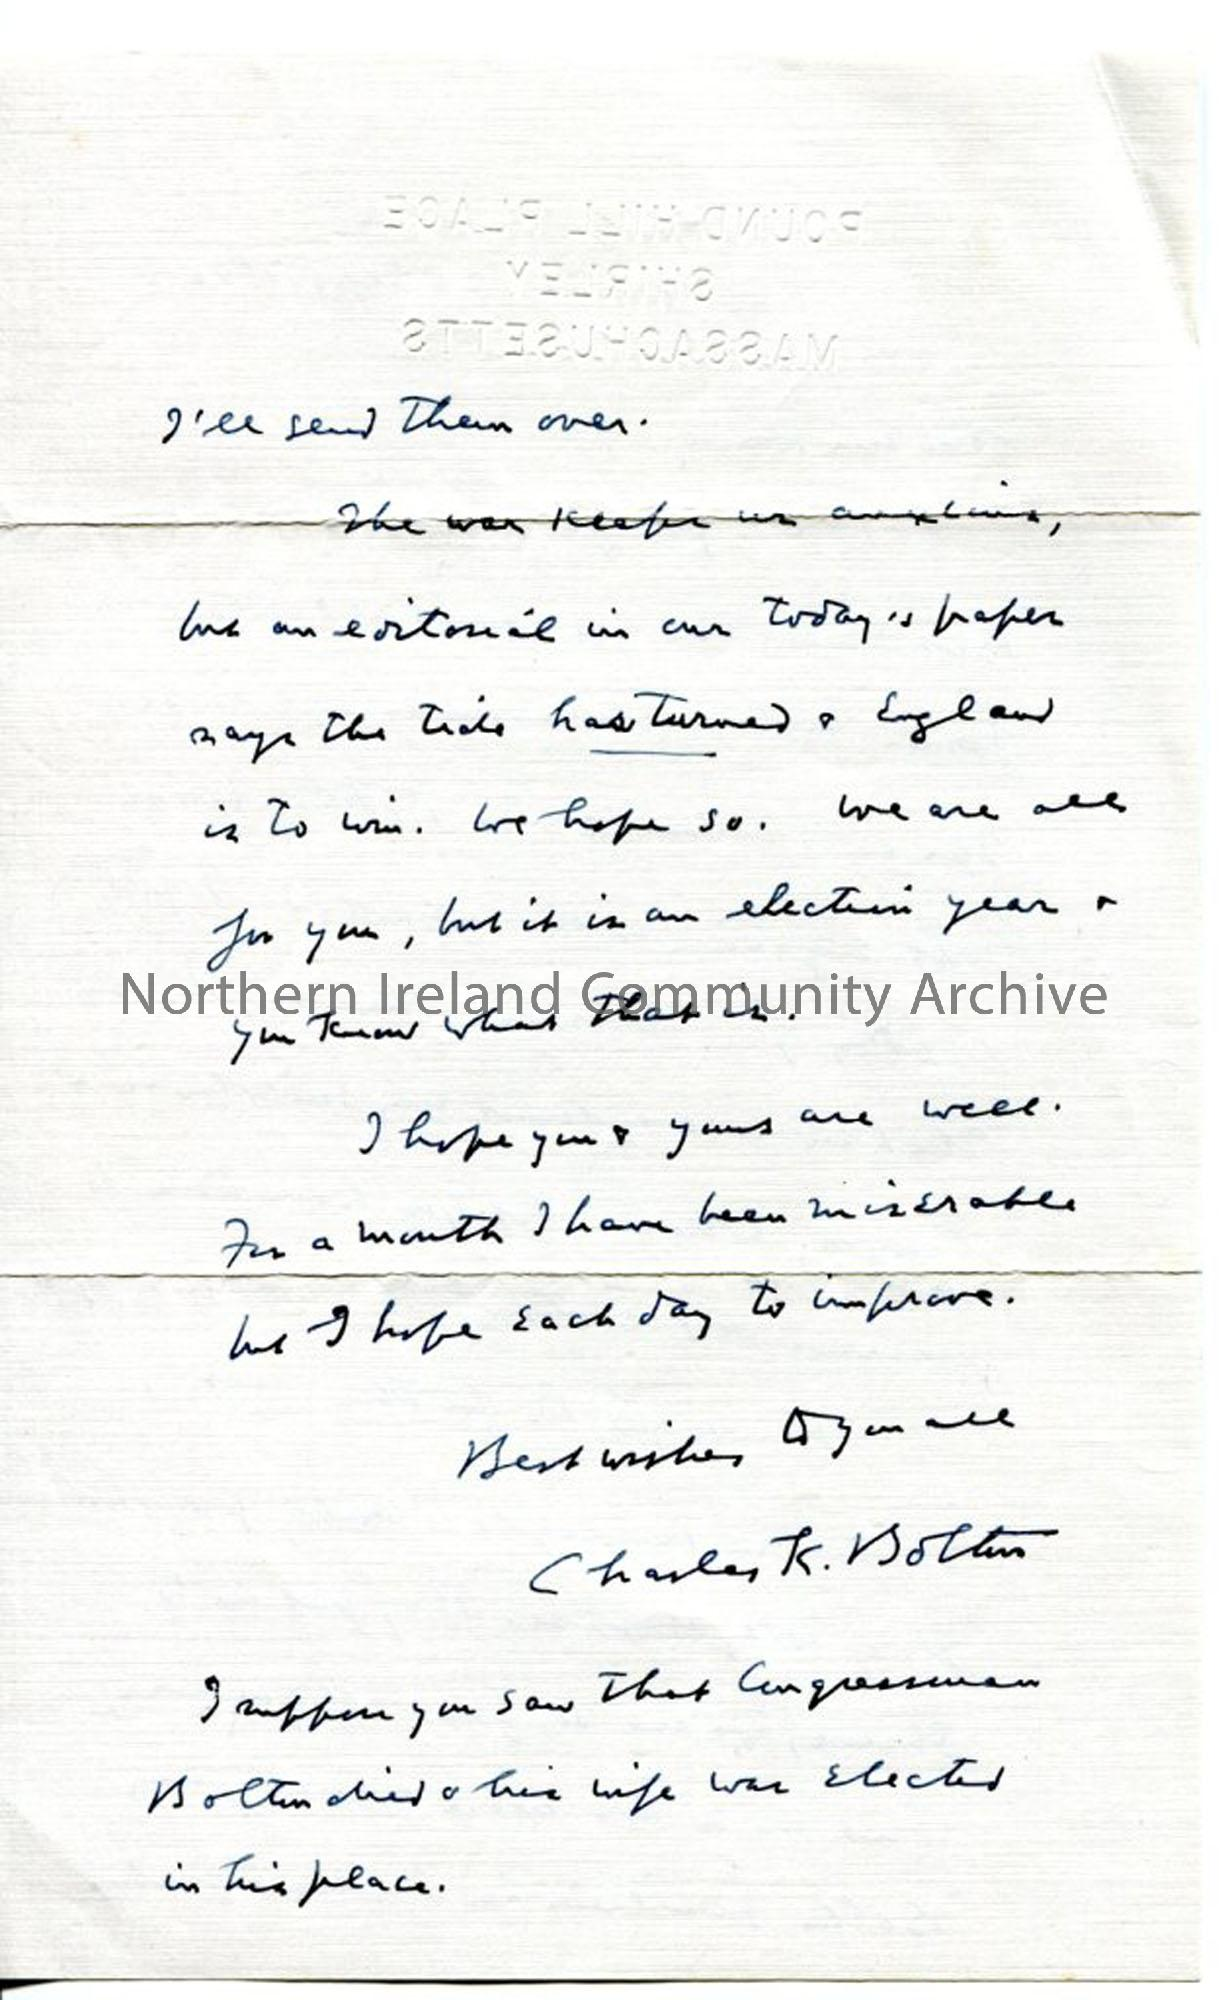 Page 2 of 2: Letter from Charles K Bolton, dated 25.9.1940